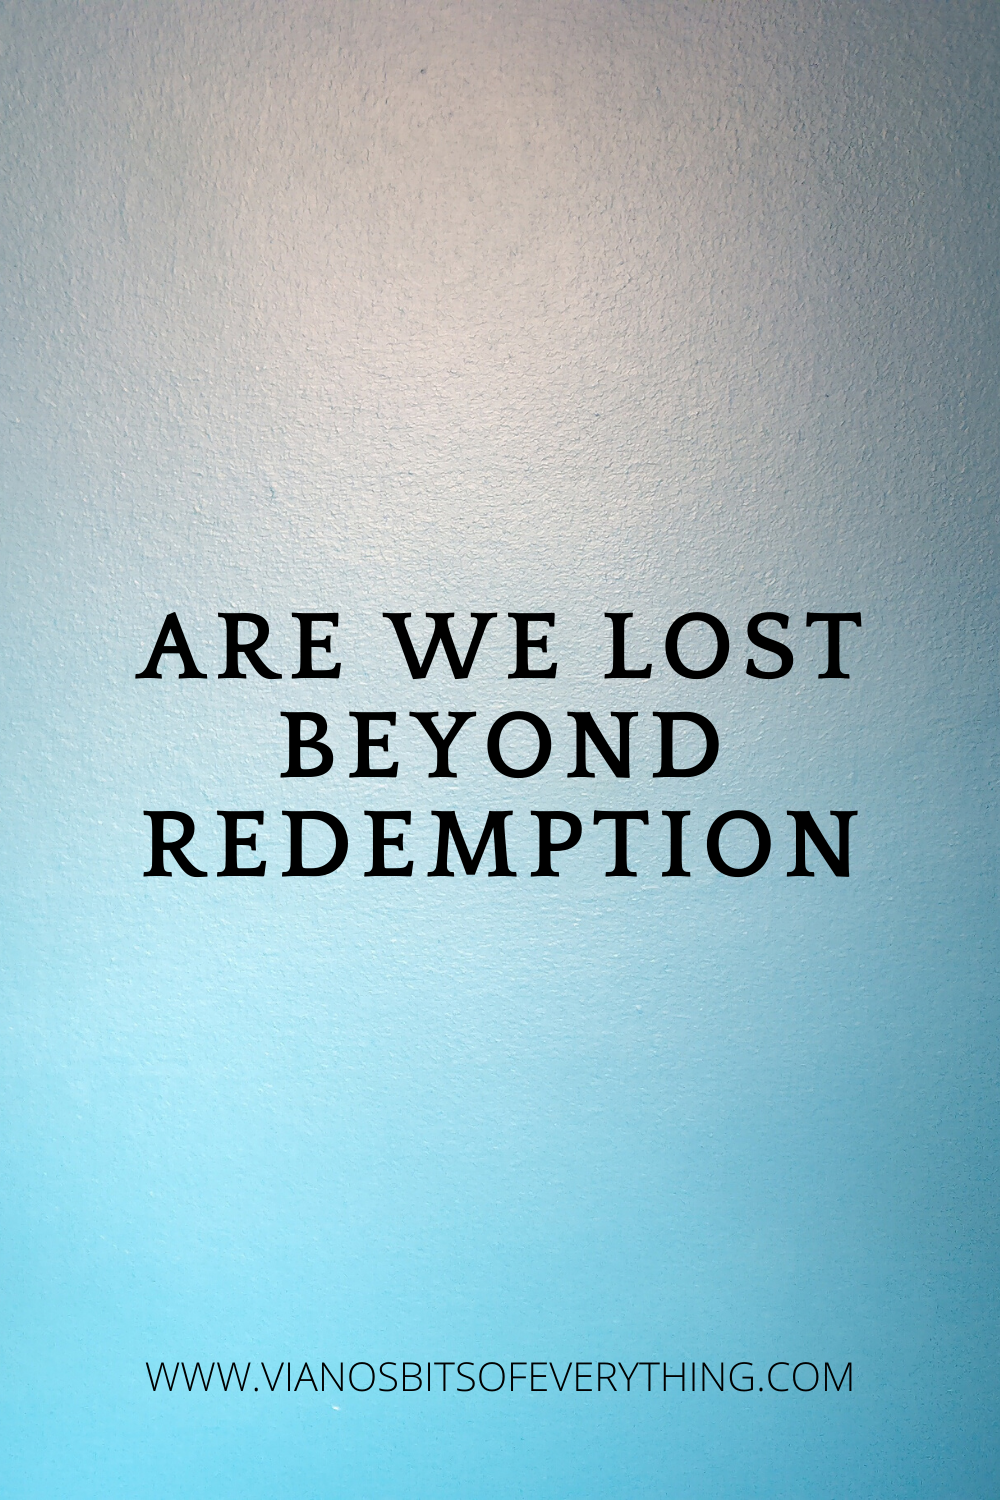 Are We All Lost Beyond Redemption?